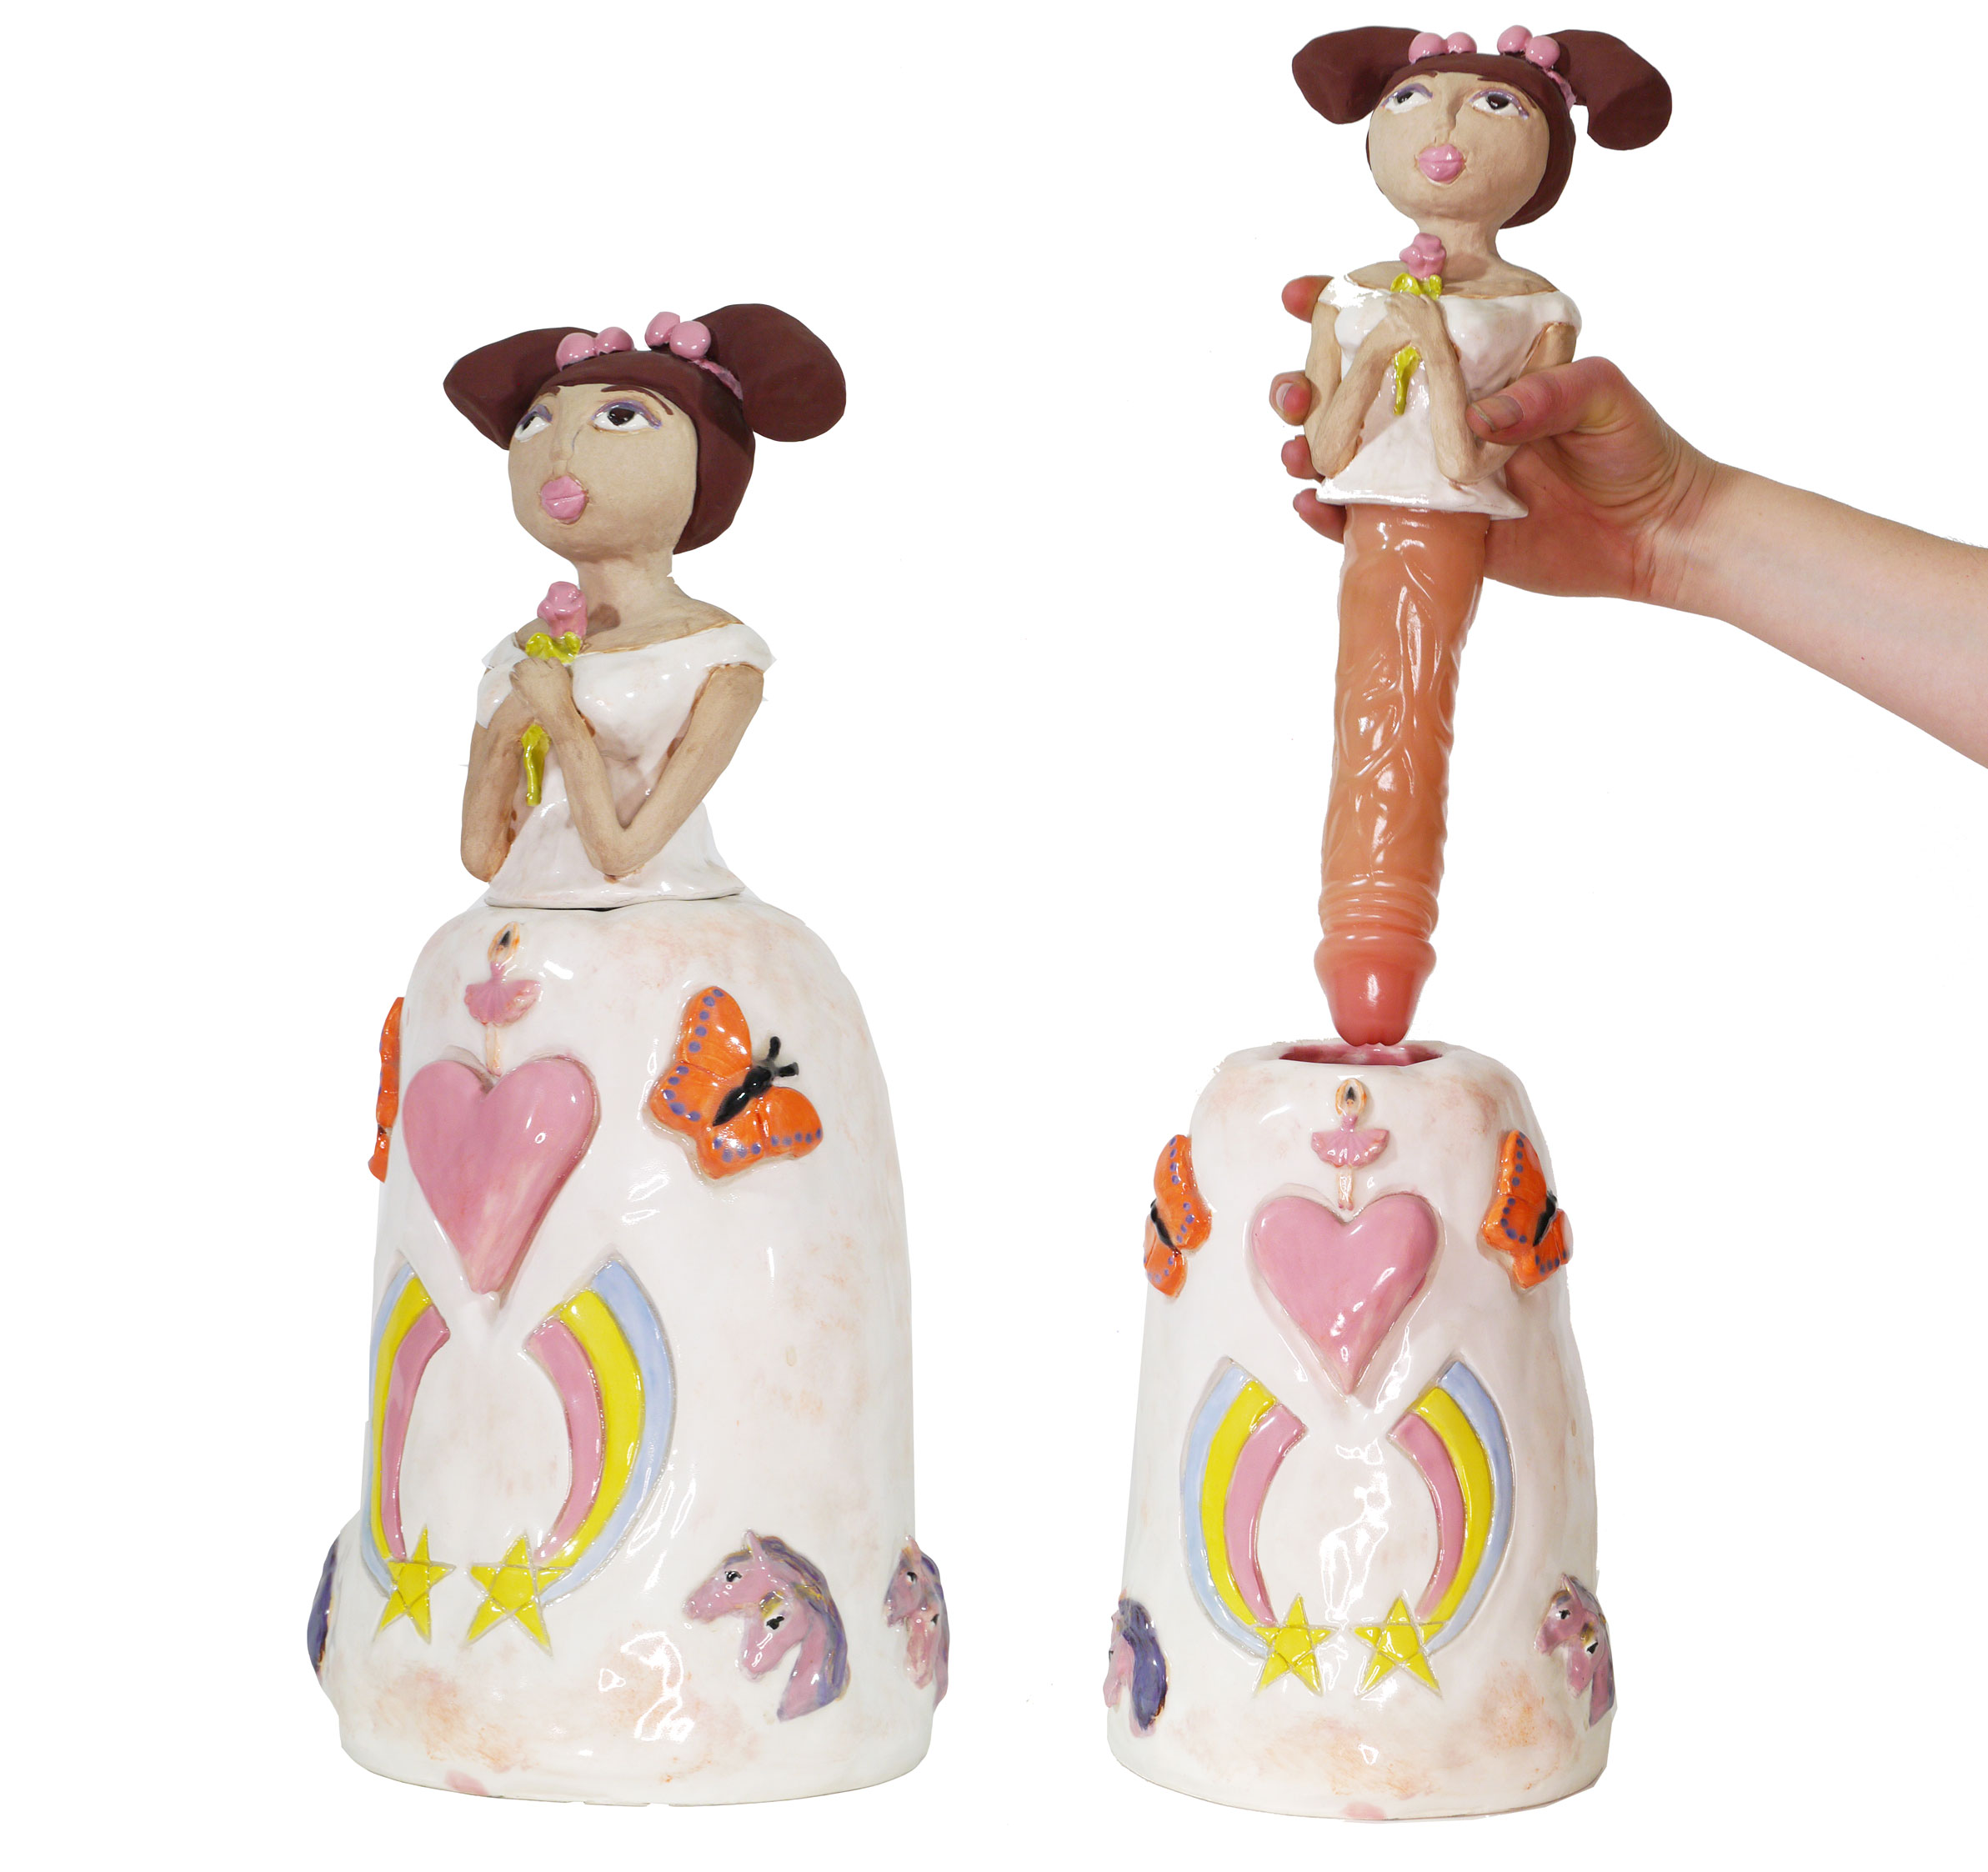 "Rebecca Goyette. Horsies and Butterflies Bride, Hand-built ceramic sculpture with silicone dildo insert, 19"" x 8"" x 8"", 2008"